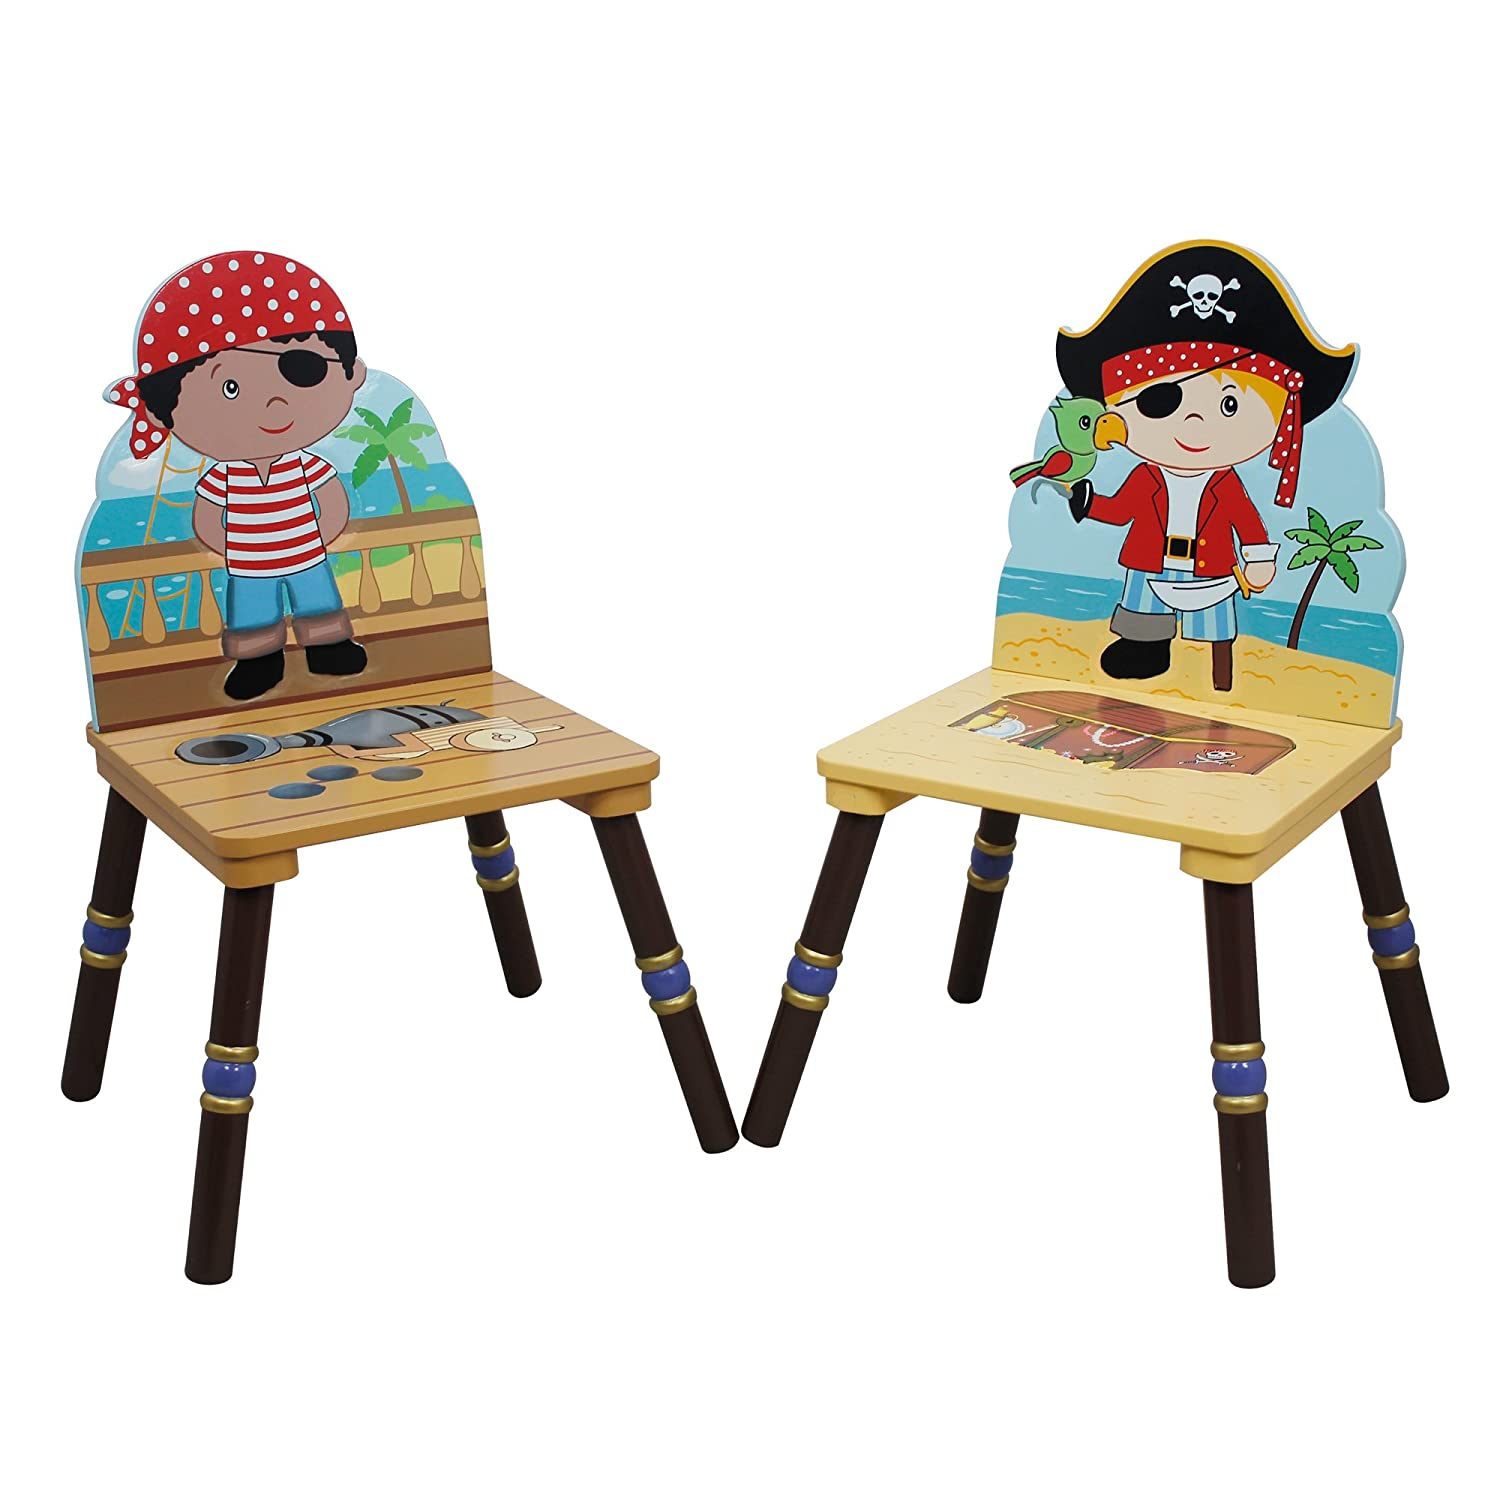 Fantasy Fields - Pirate Island themed Kids Wooden 2 Chairs Set Black & Red (Table Sold Seperately)| Hand Crafted & Hand Painted Details | Child Friendly Water-based Paint Fantasy Fields By Teamson TD-11593A2